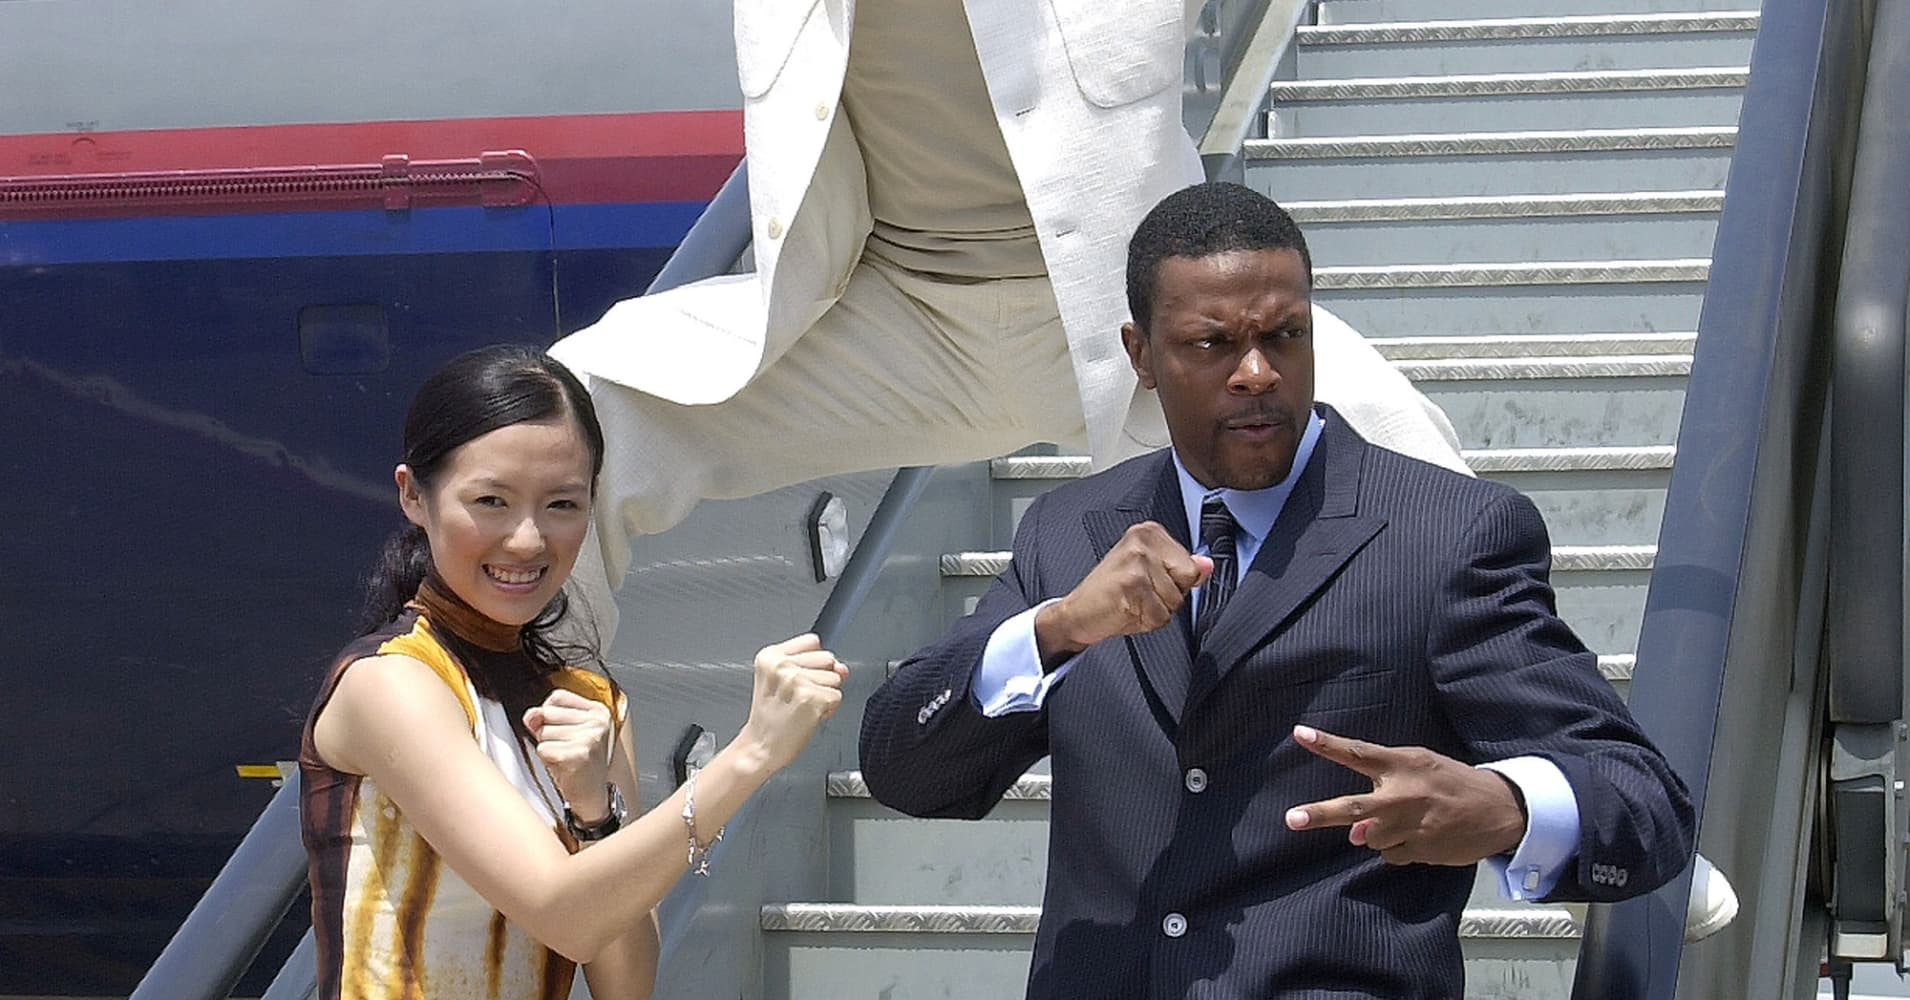 Chris Tucker, co-star of Rush Hour